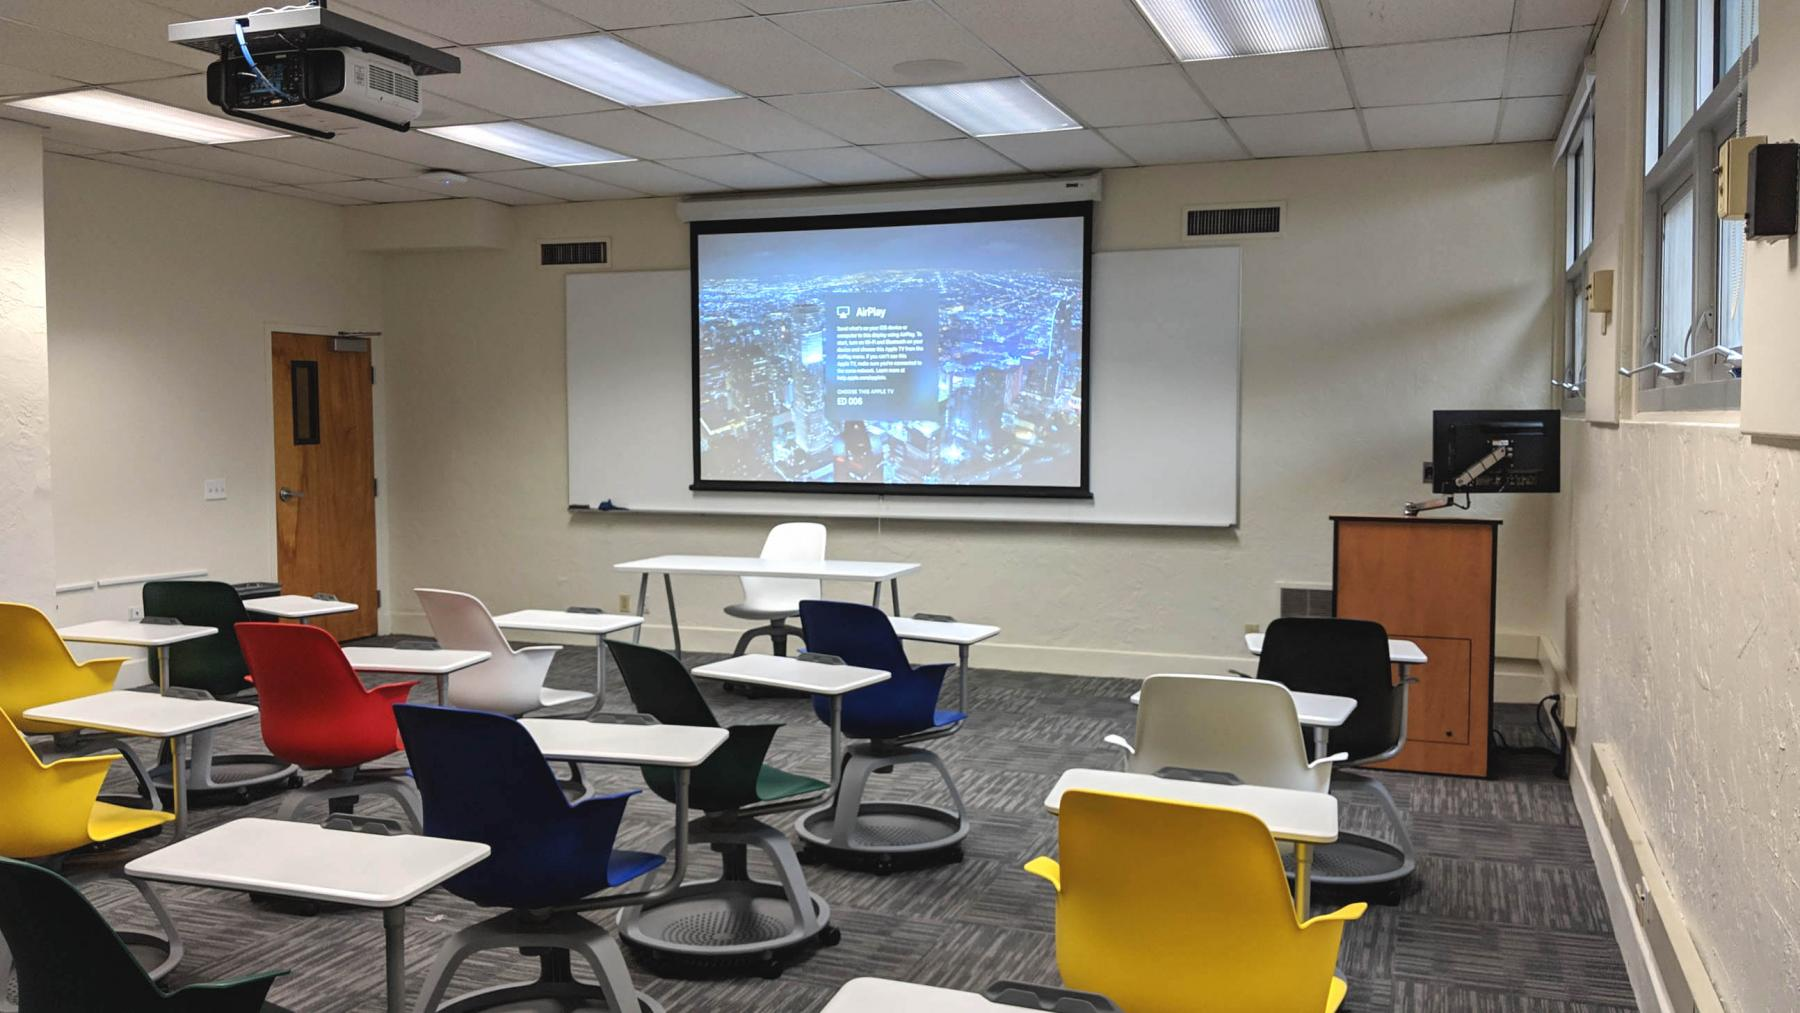 Classroom with a projected image showing directions for connecting to wireless AV